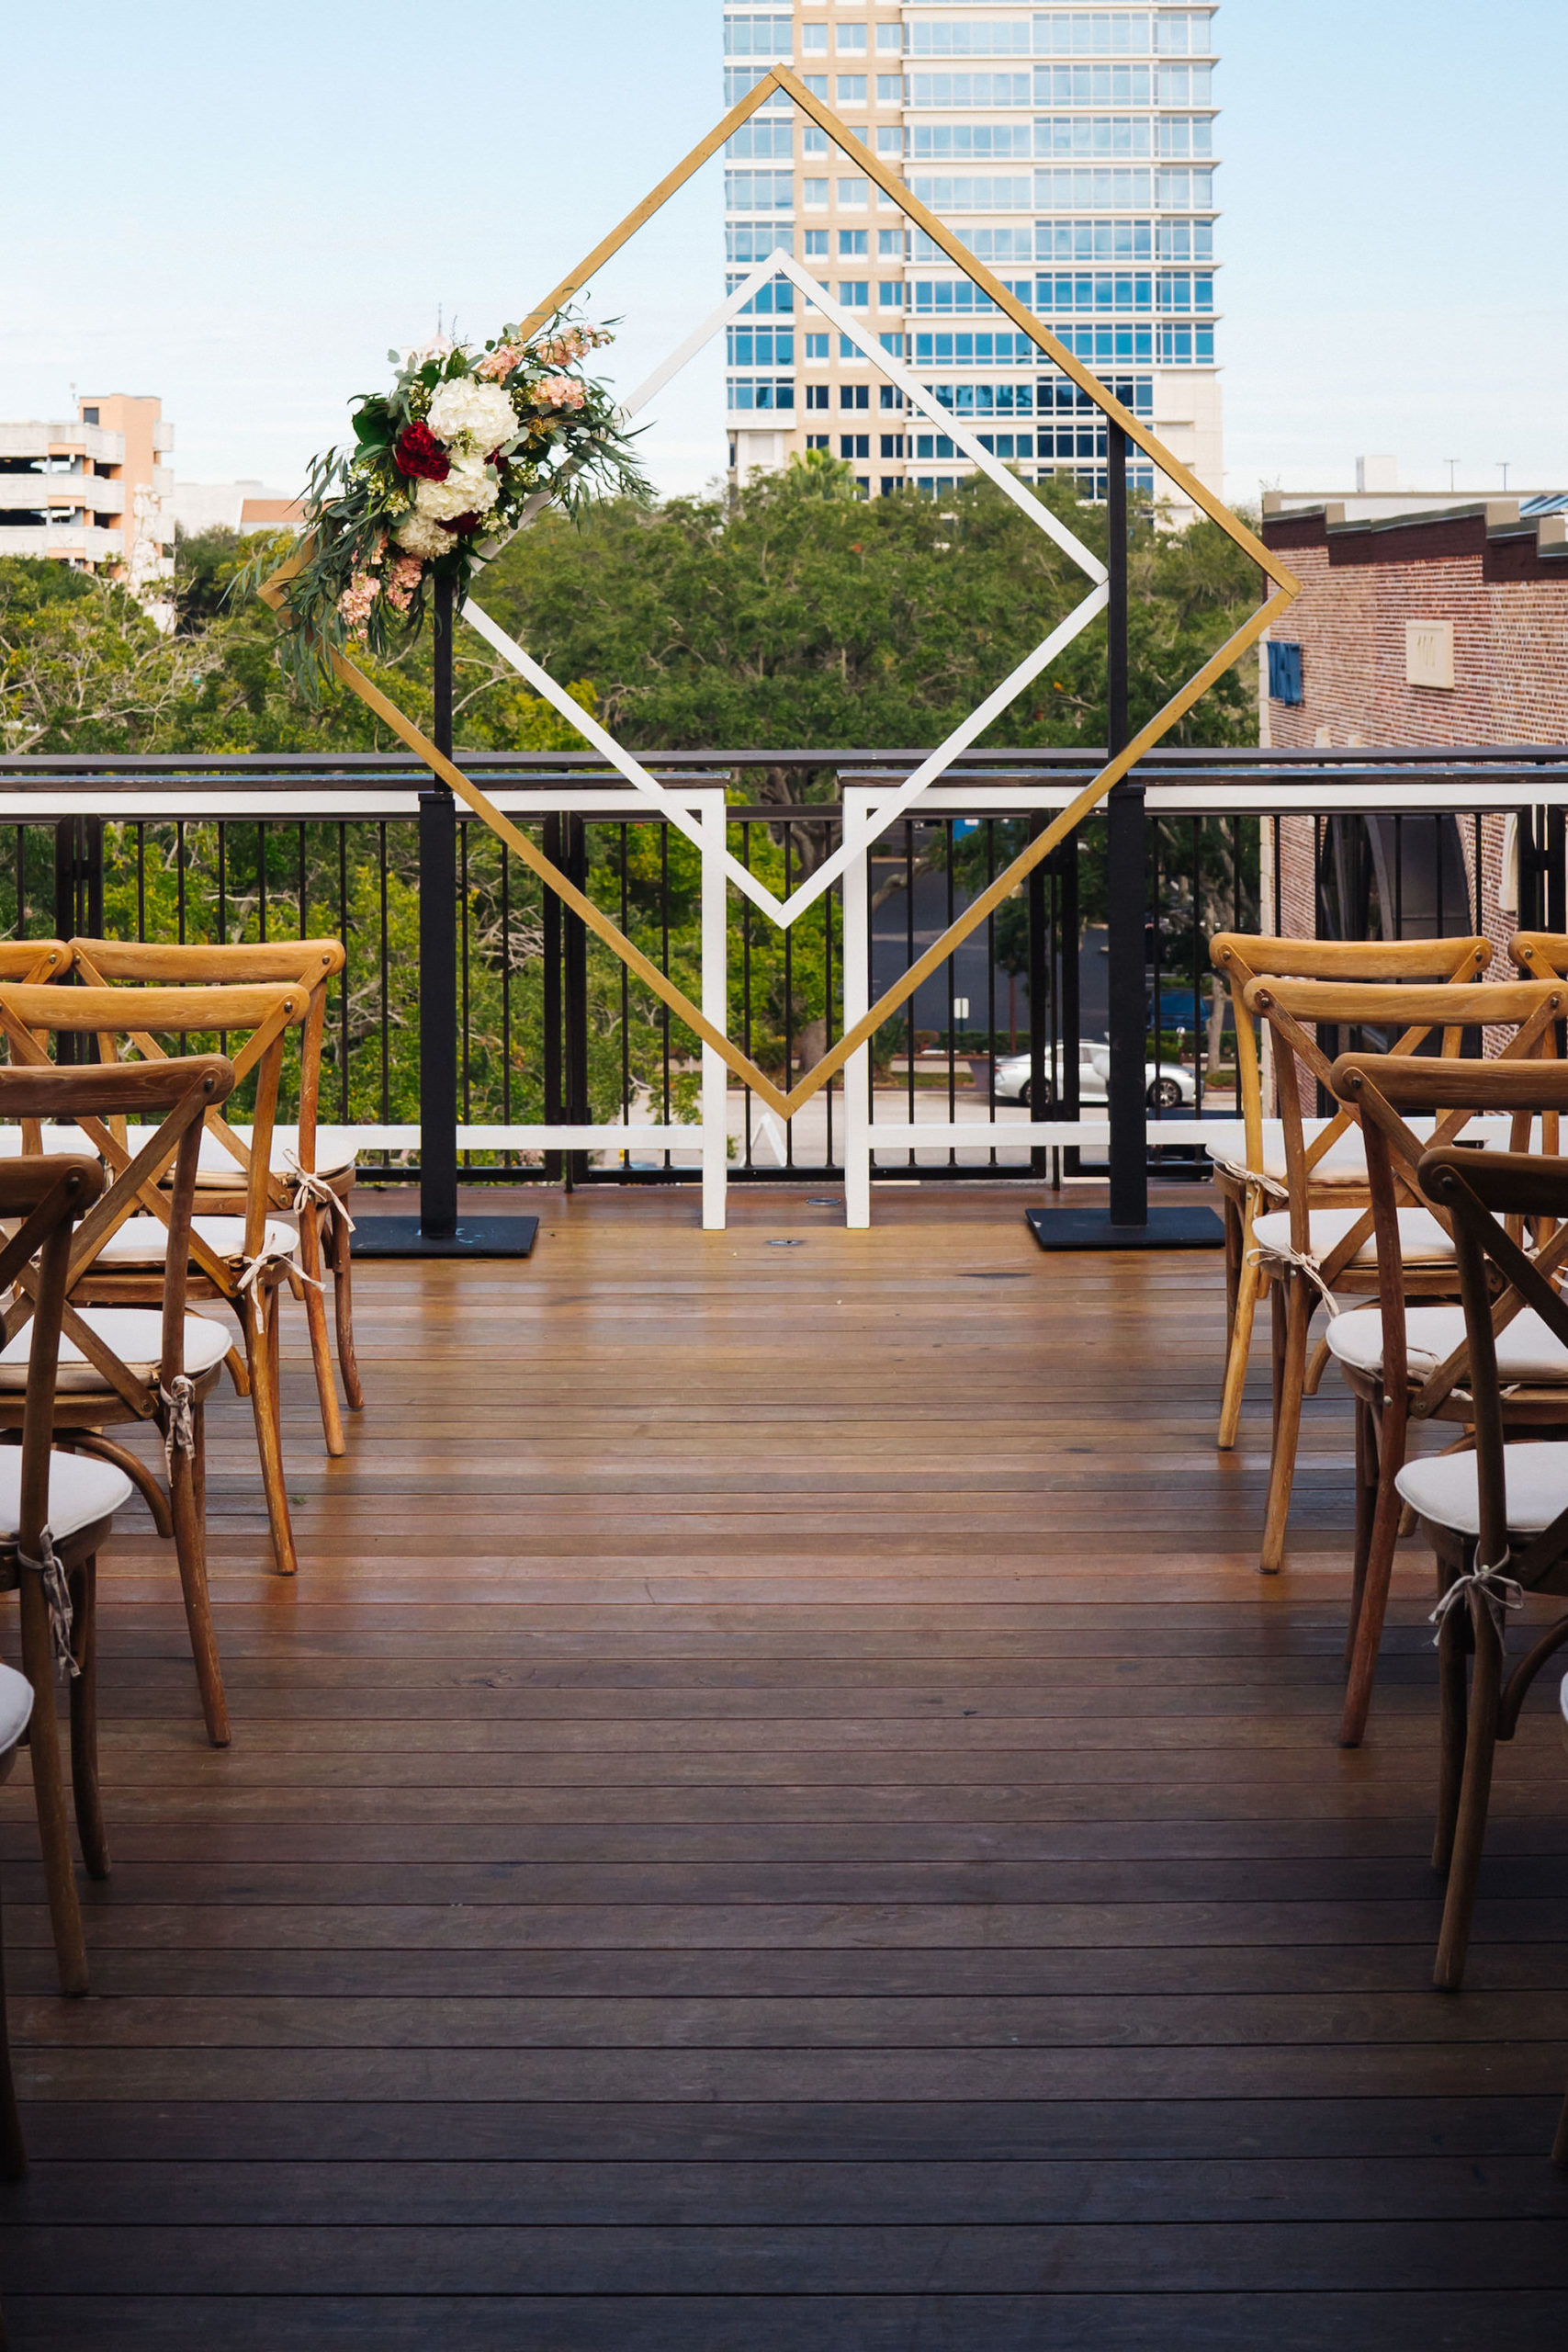 St. Petersburg Florida Wedding   St. Pete Venue Red Mesa Events   Rooftop Geometric Gold Ceremony Arch Backdrop   Wood Cross Back French Country Chairs